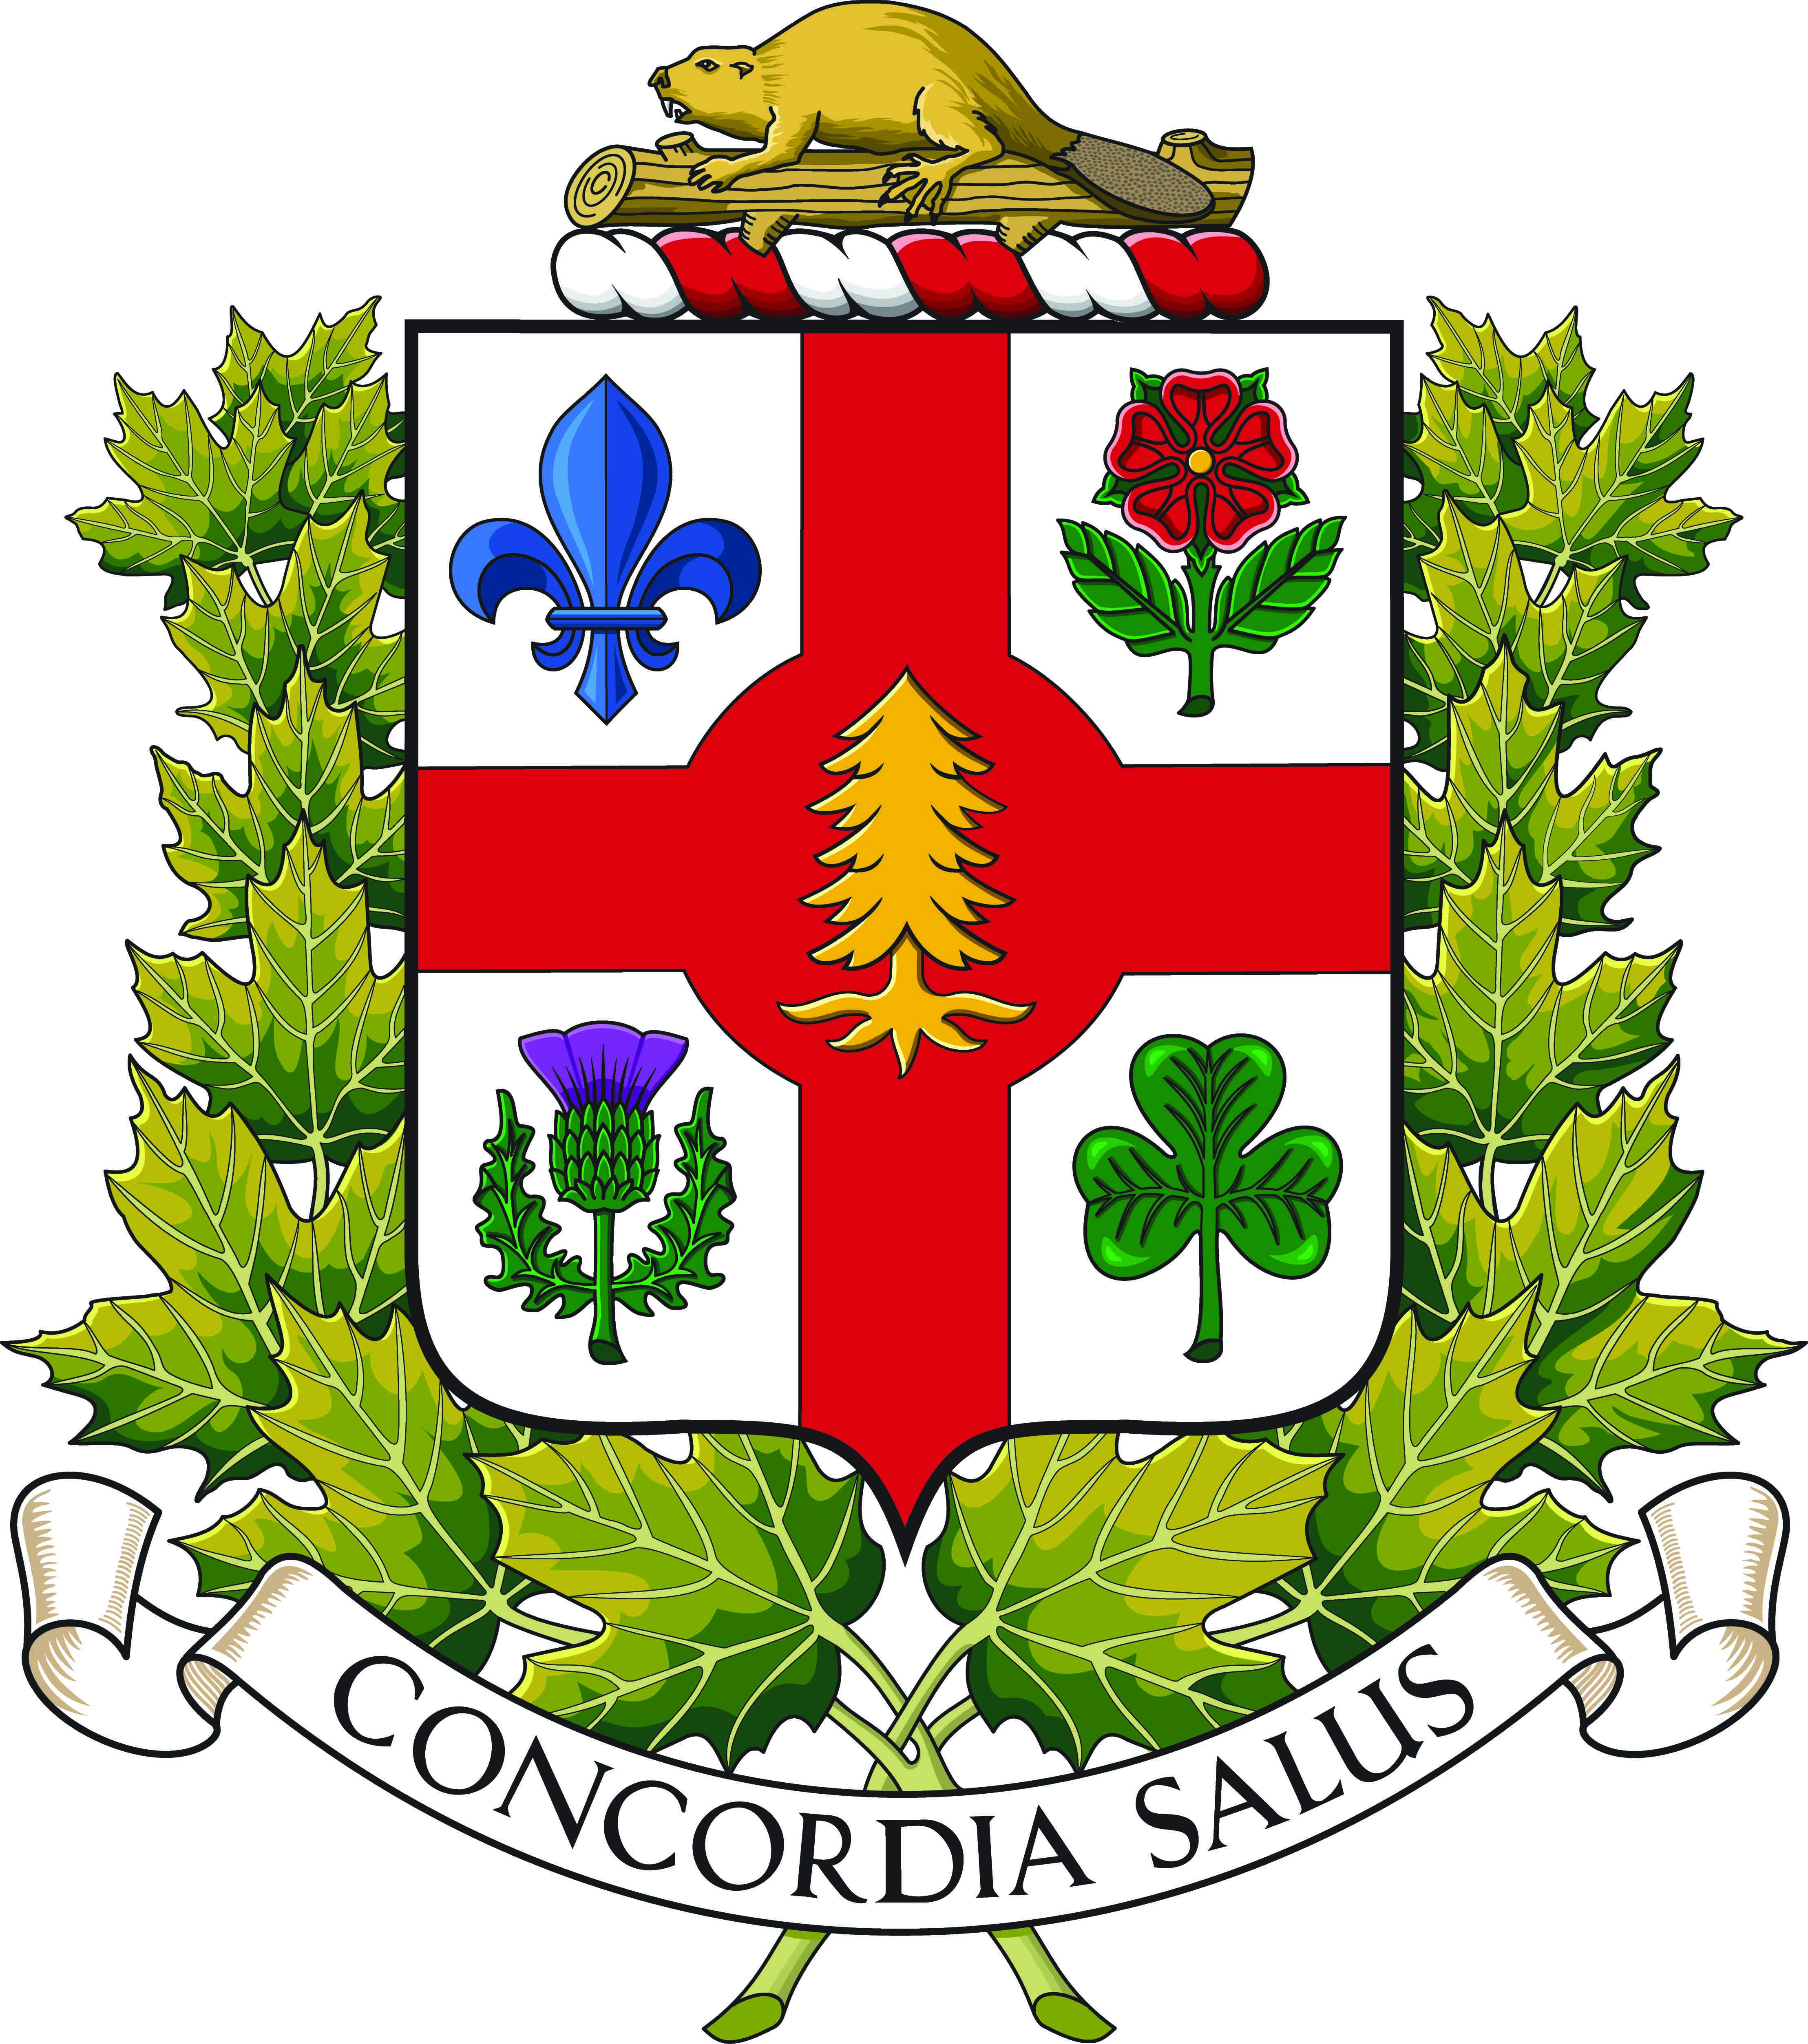 Montreal's coat of arms